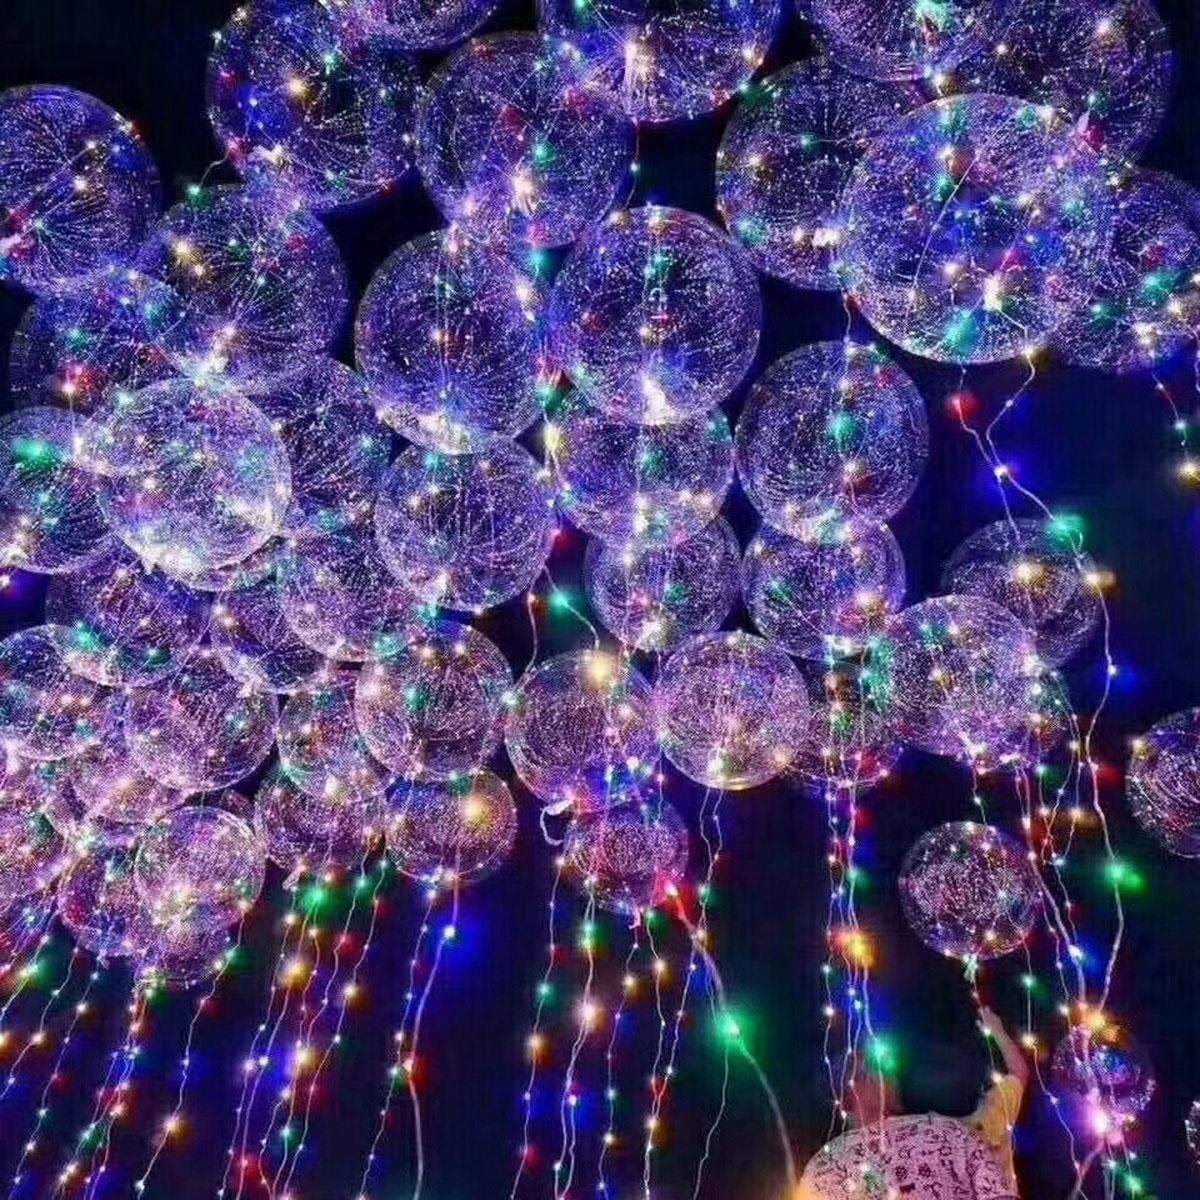 18 inch 10 PCS Led Light up BoBo Balloon Colorful/Warm White Lights, Fillable Transparent Balloons with Helium, Great for Christmas Party, Wedding and Party Decoration (10 Pack Colorful)